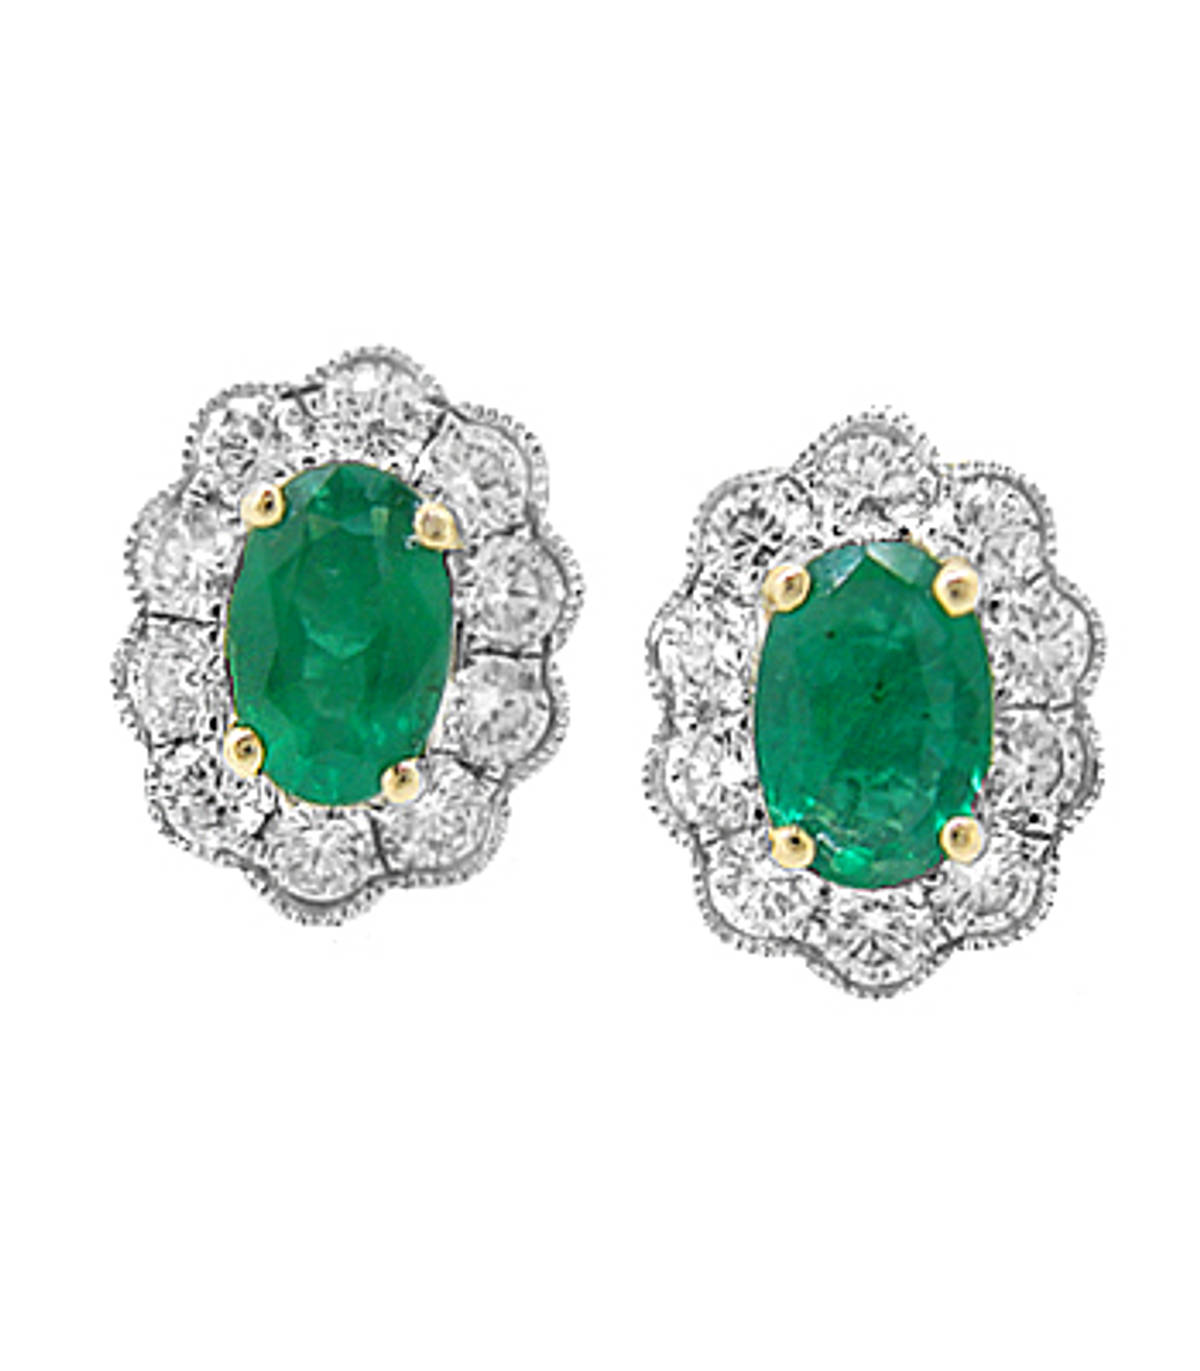 OVAL EMERALD AND DIAMOND CLUSTER STUD EARRINGSPictured item: emerald 0.87ct/diamonds 0.71ct set in 18k white gold